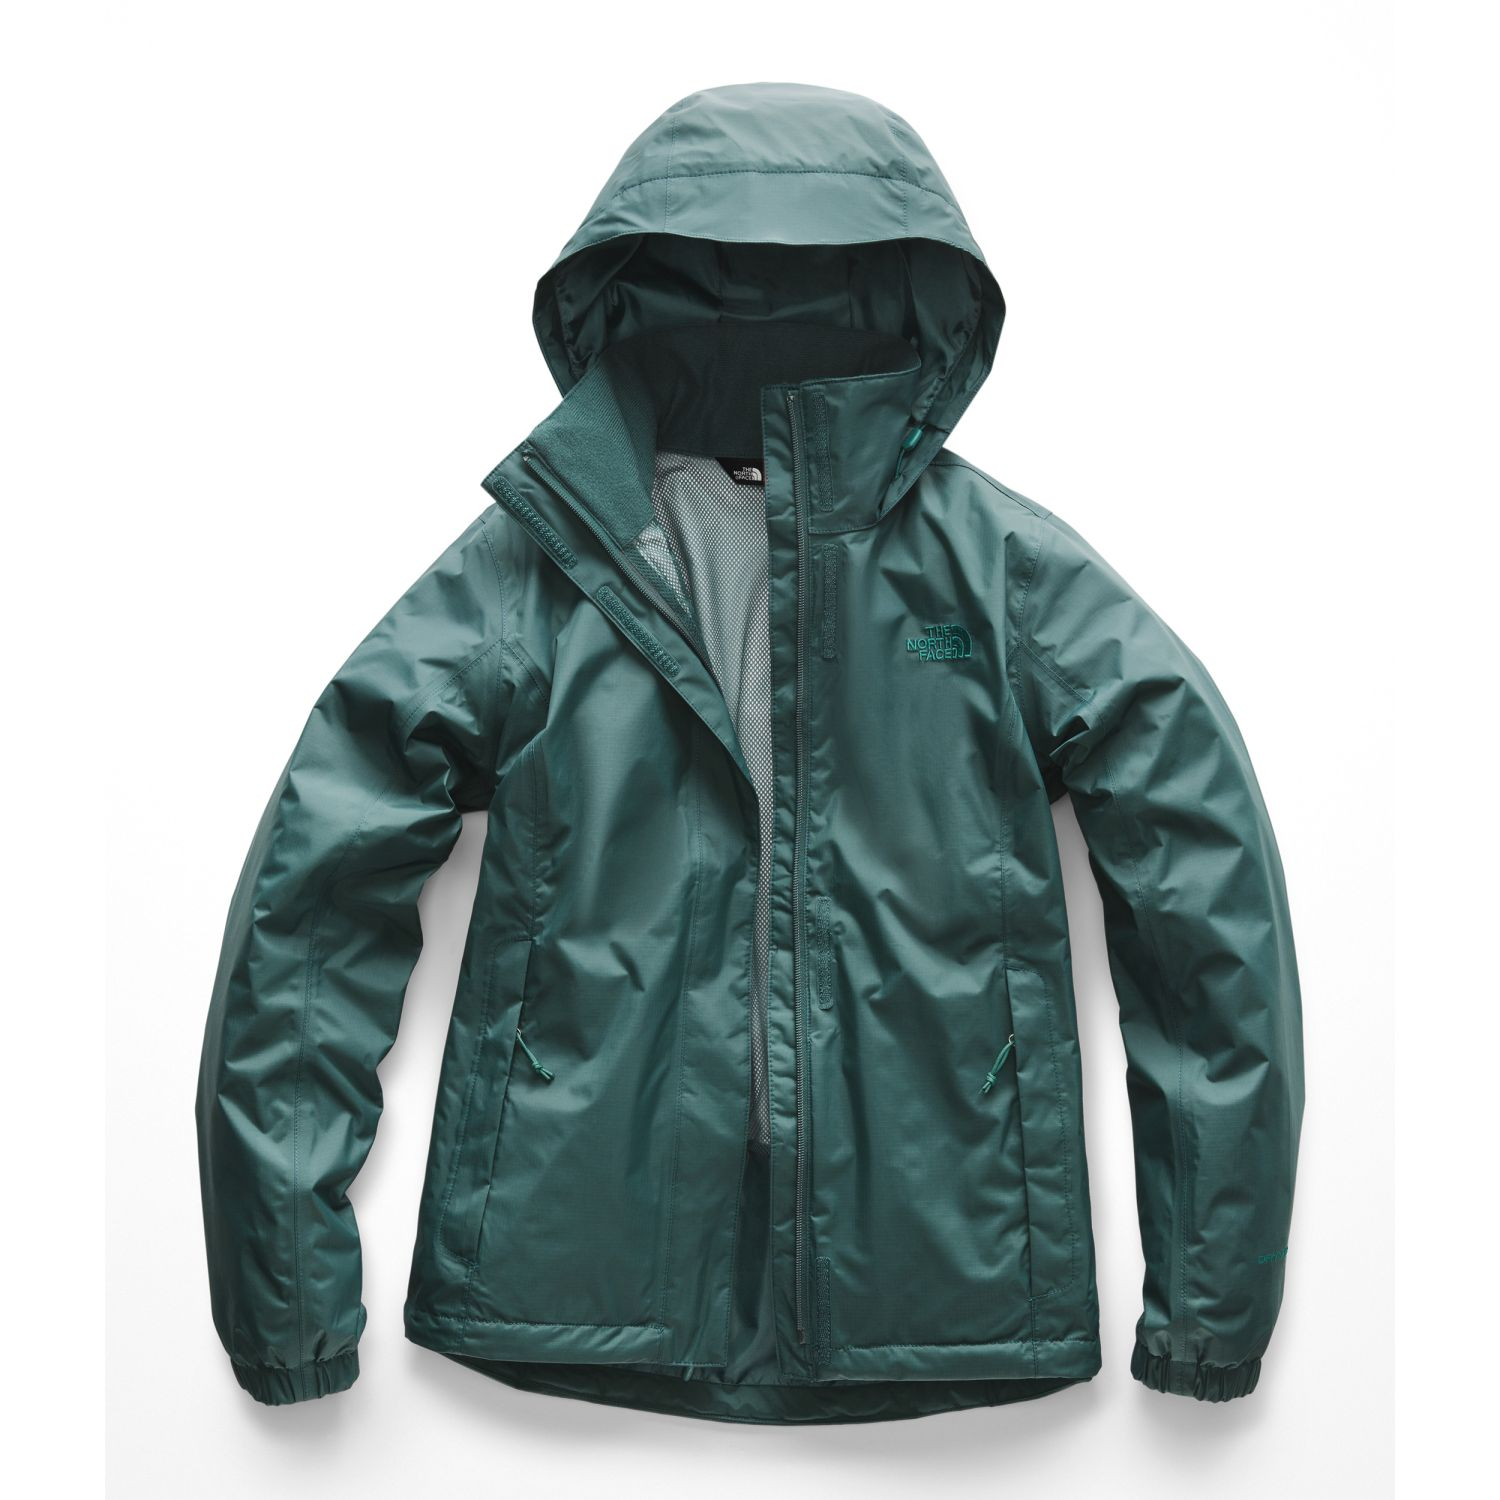 The North Face W RESOLVE 2 JACKET Verde Impermeables y chaquetas